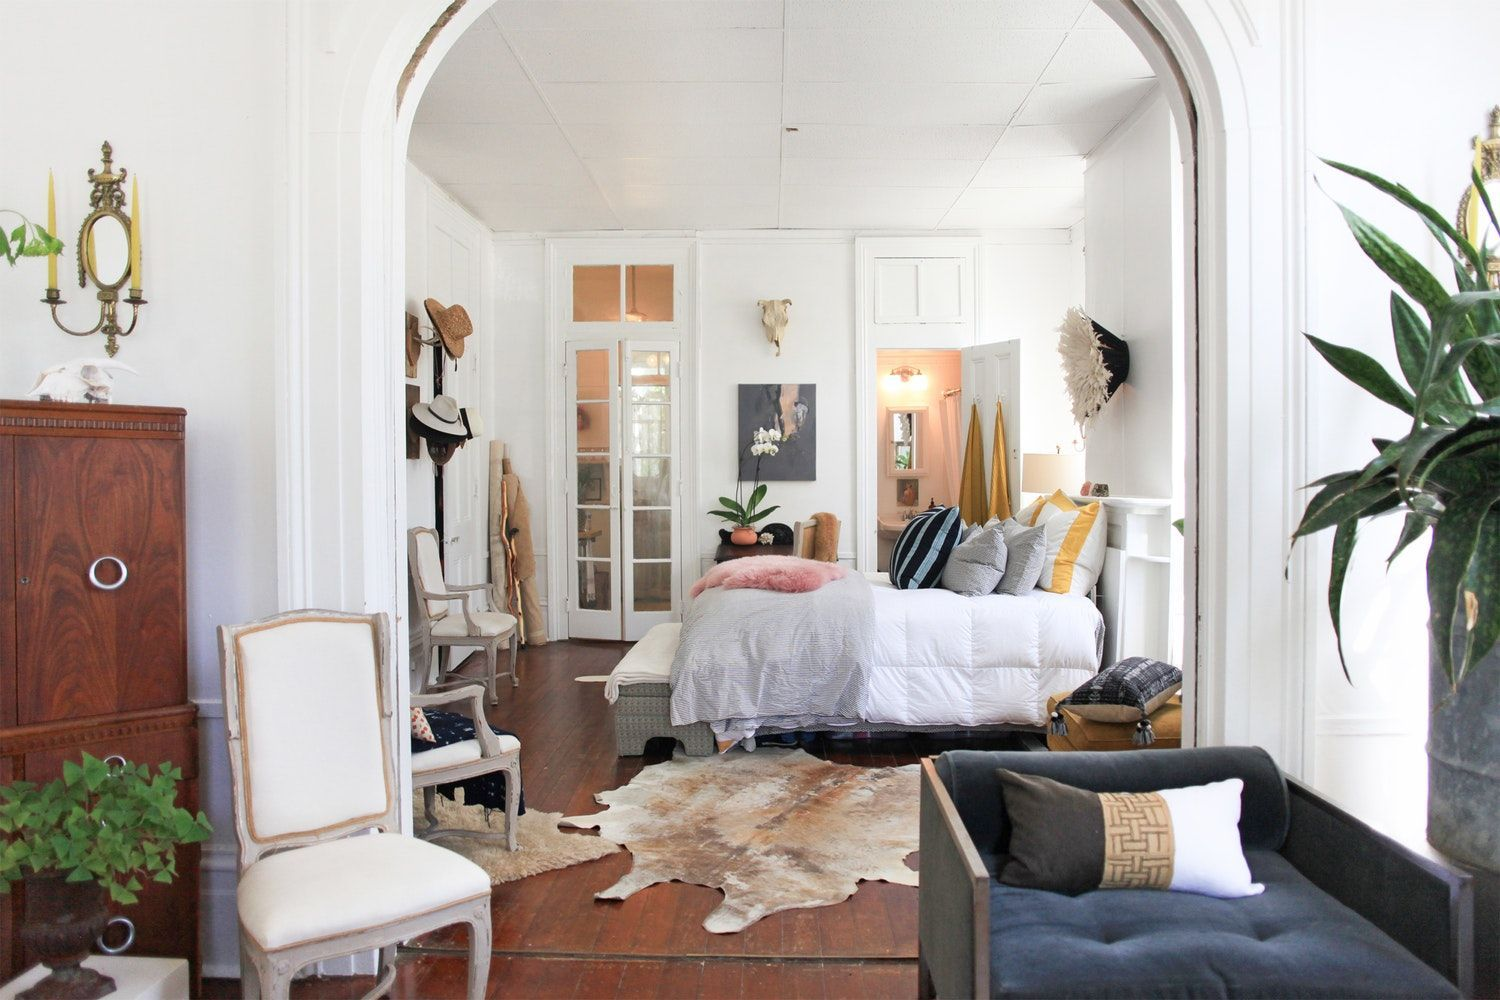 Erica jacobs runs  holistic home design company called between red  violet where she offers services ranging from space planning to landscaping also rh pinterest